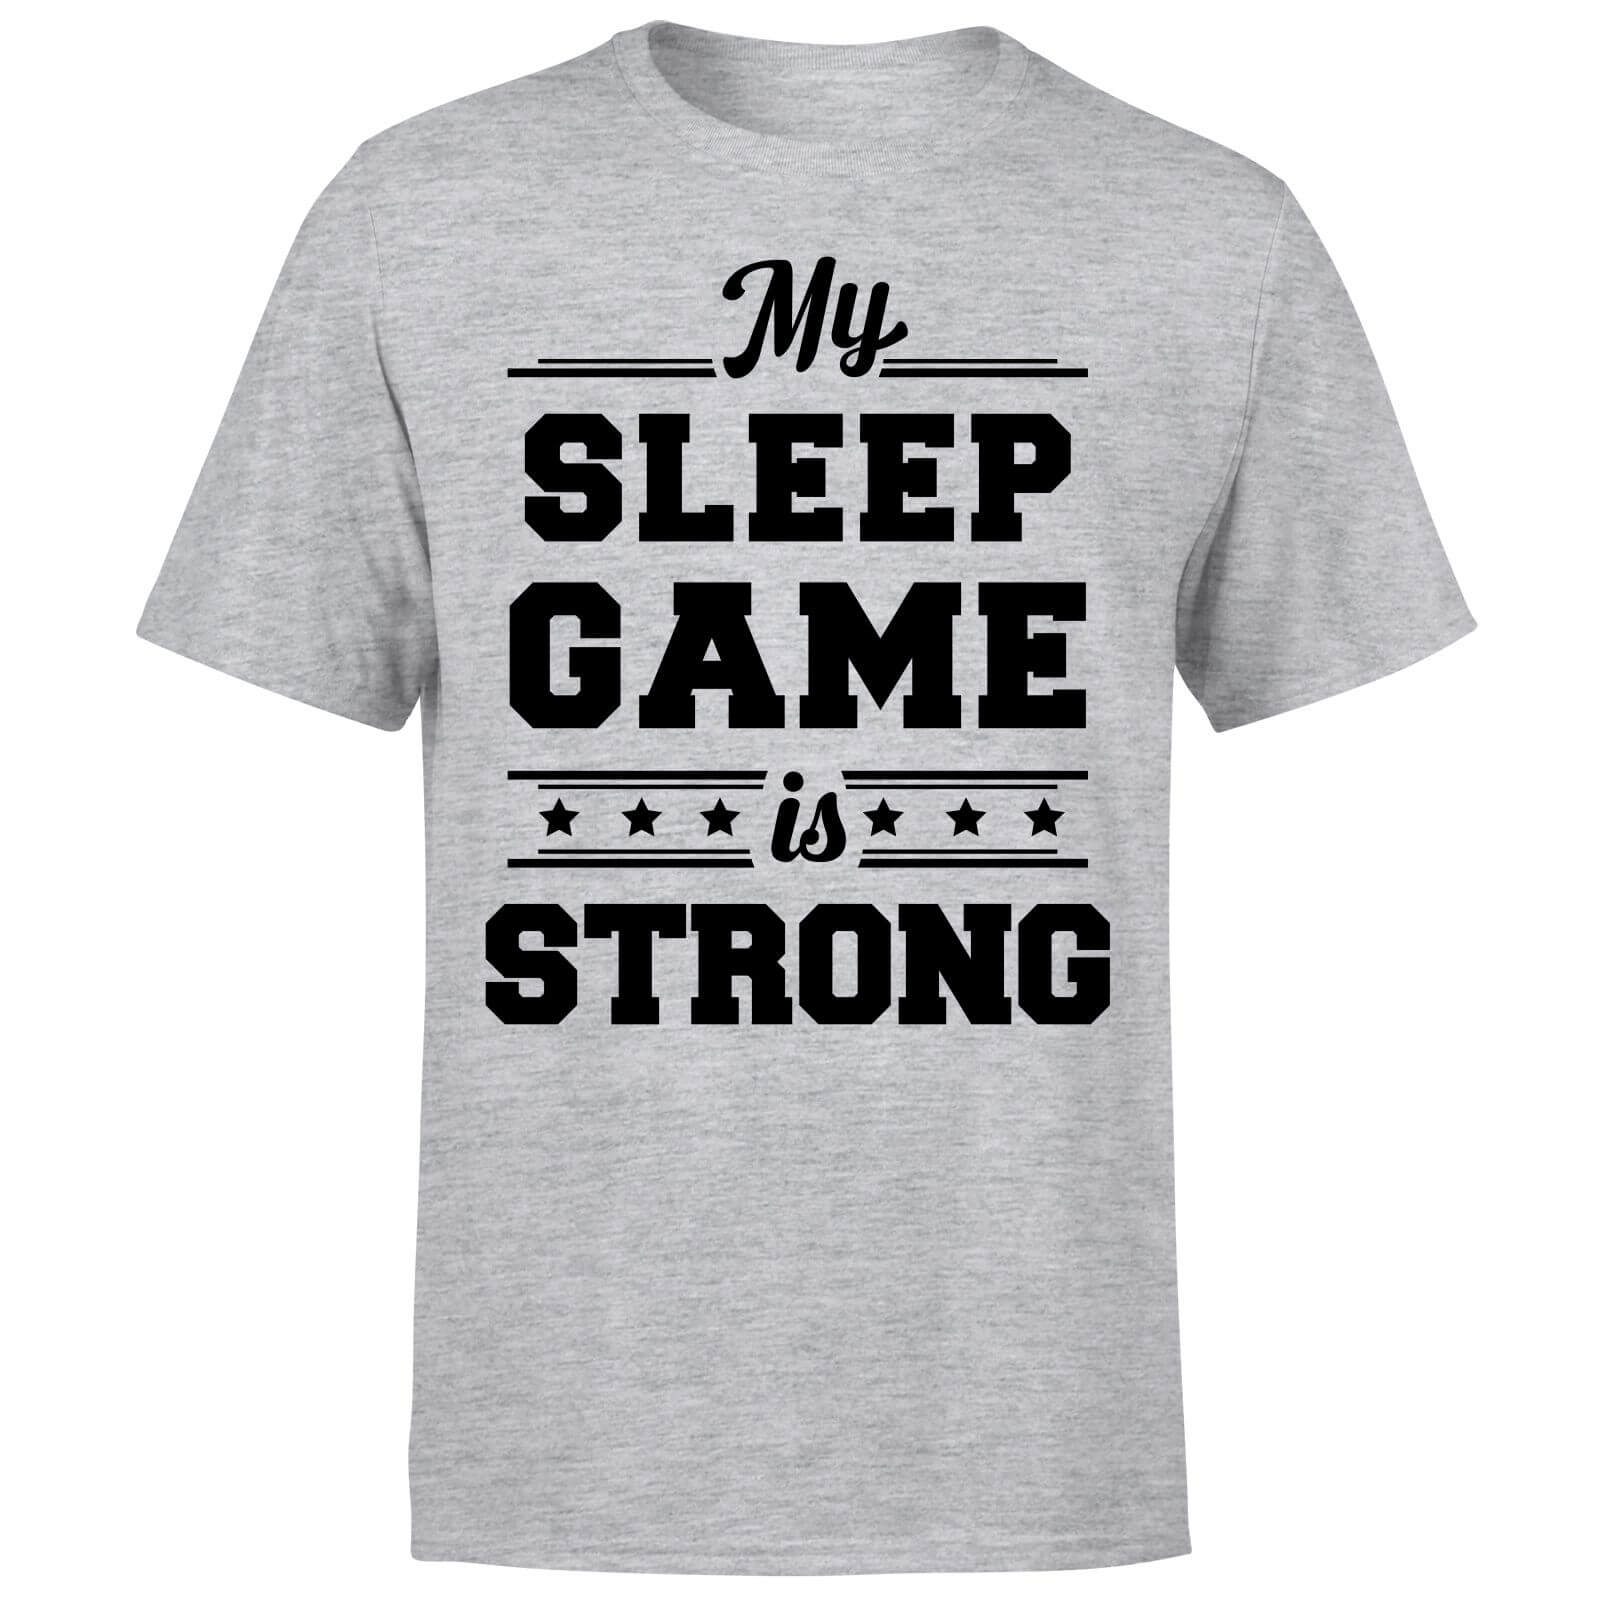 My Sleep Game is Strong T-Shirt - Grey